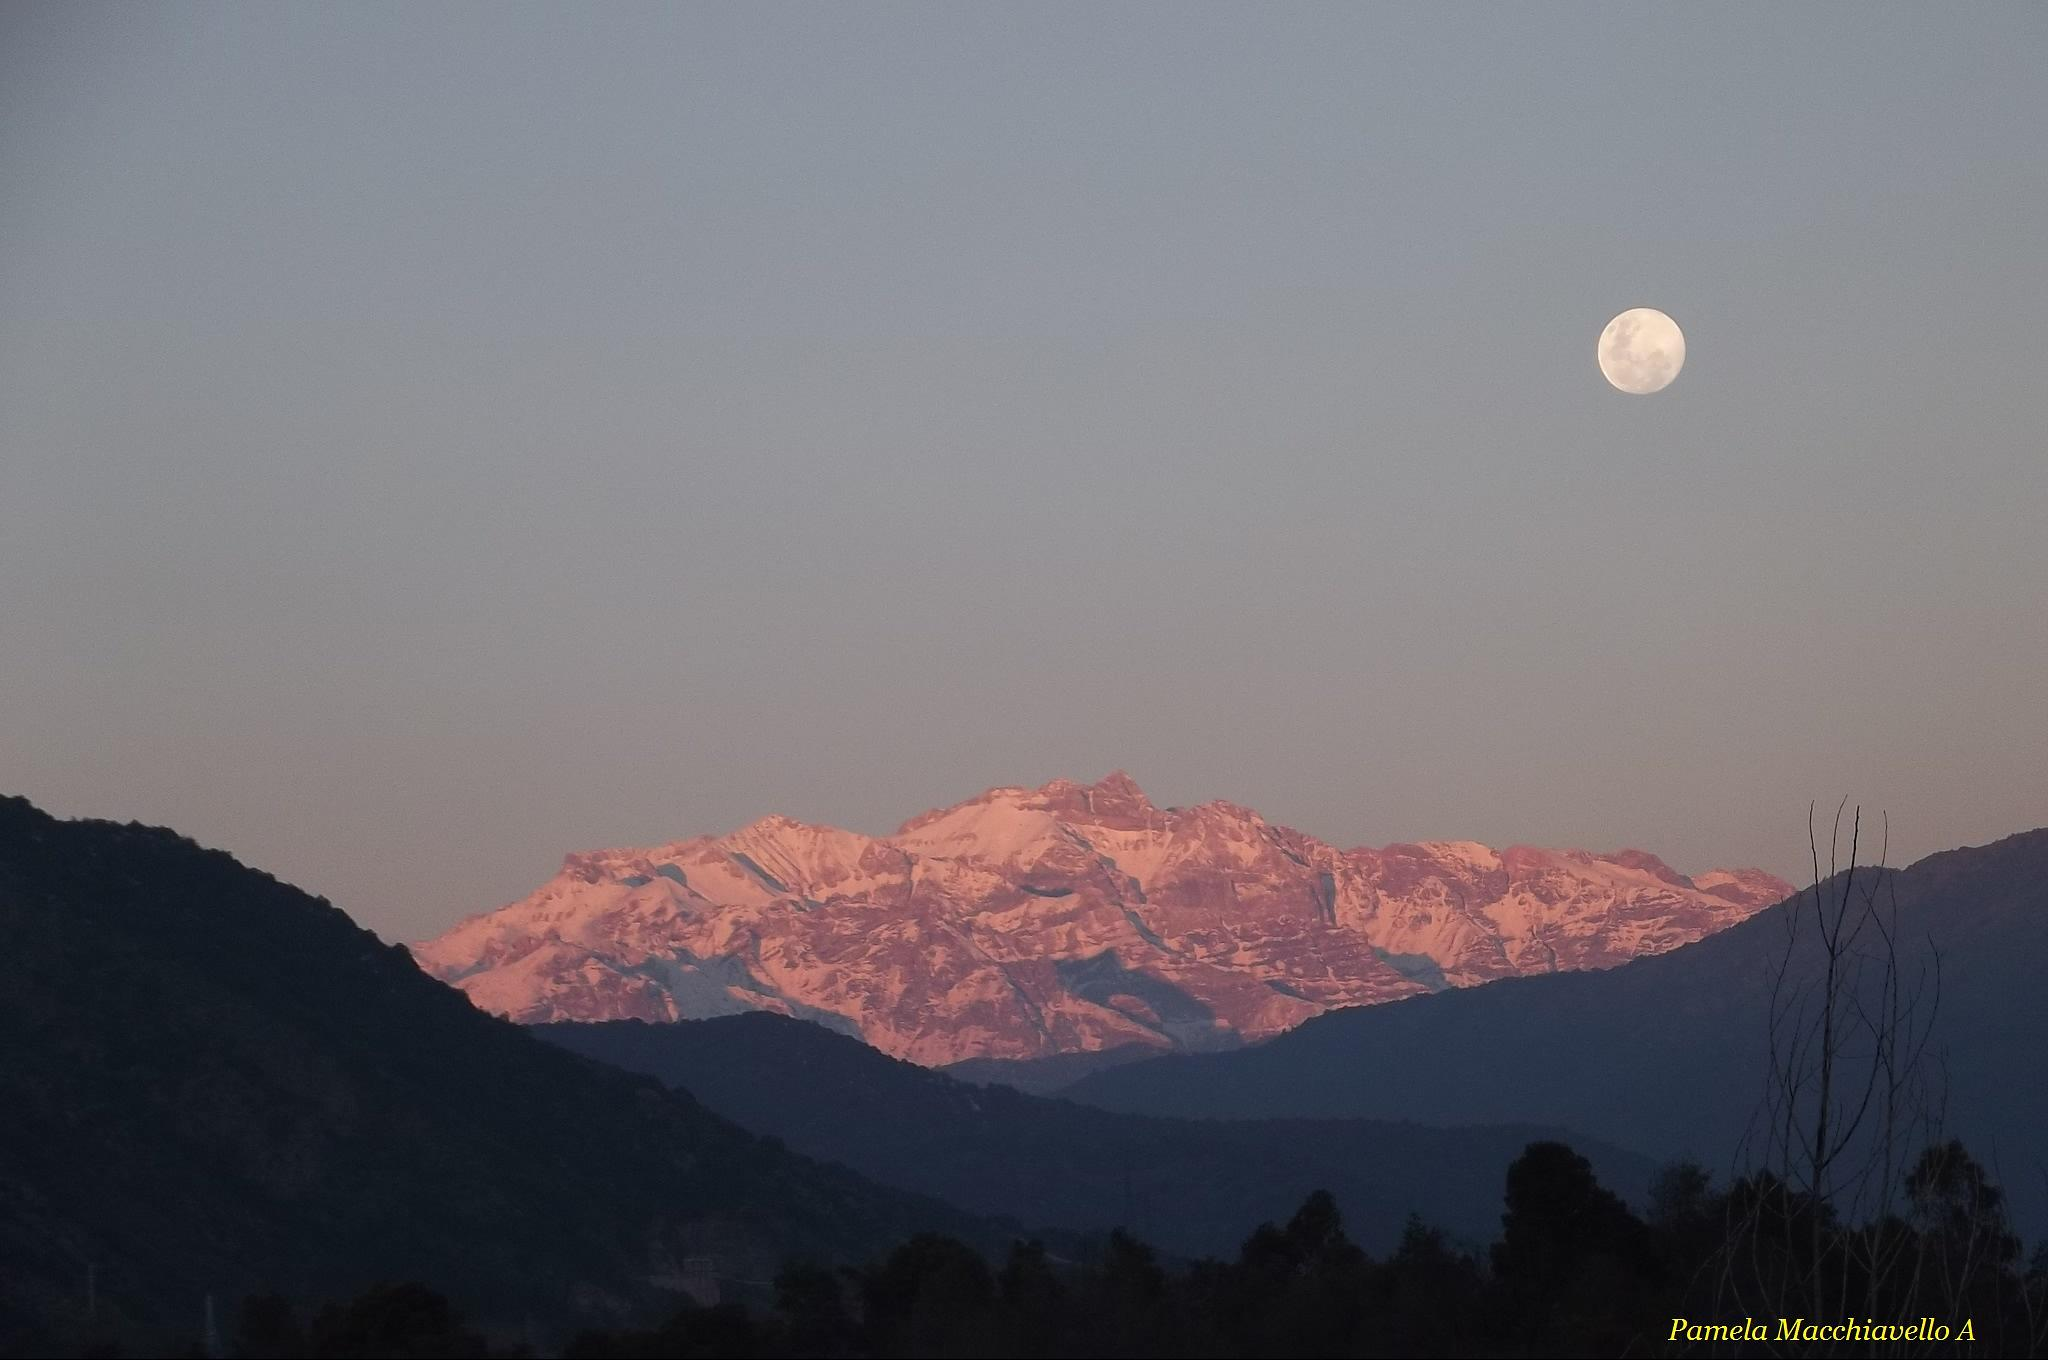 Sunset and moon by Pamela Macc